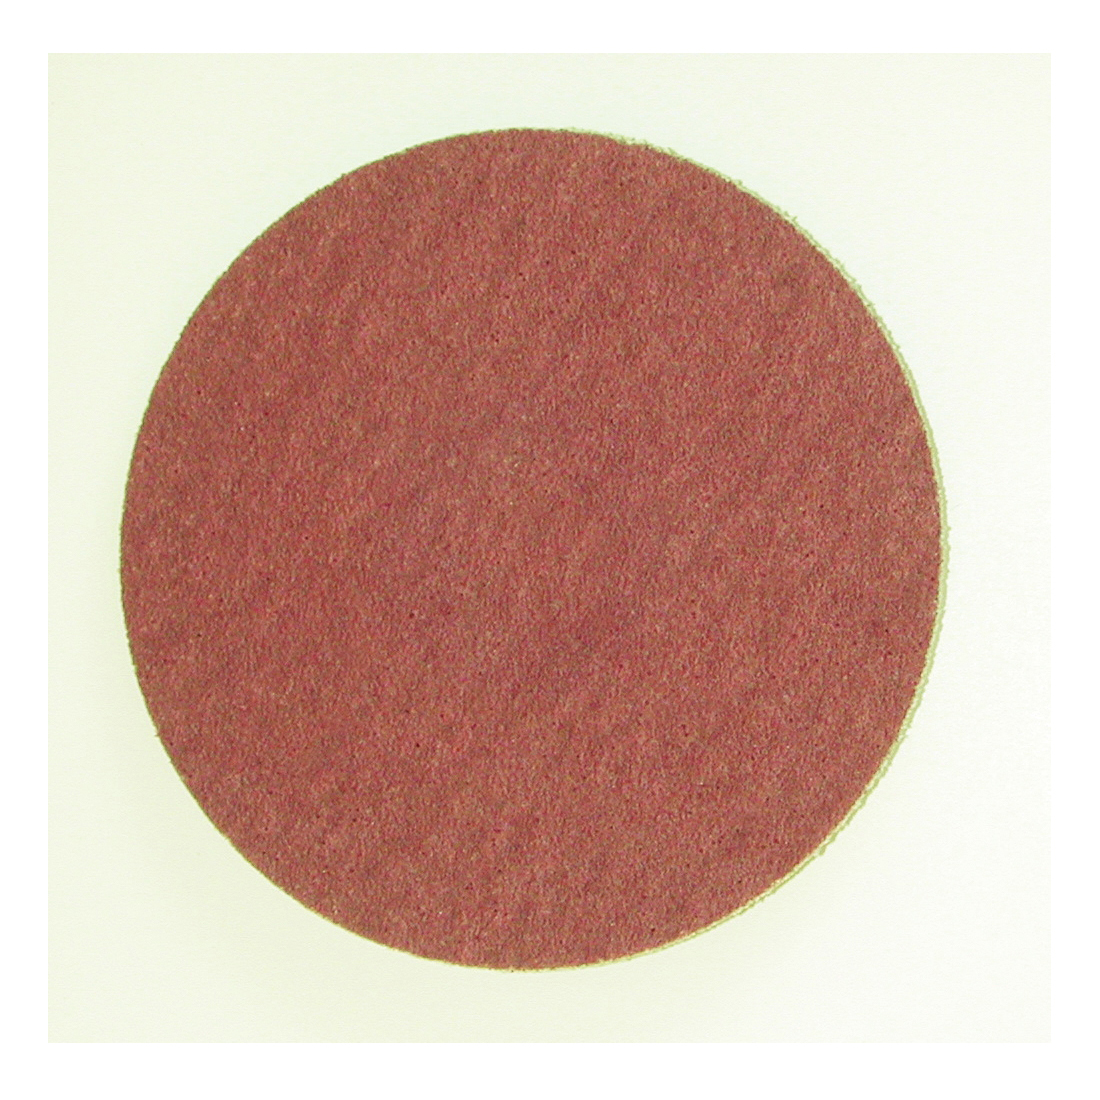 Standard Abrasives™ 051115-33214 GP-Plus Non-Woven Convolute Wheel, 8 in Dia, 3 in Center Hole, 1 in W Face, Fine Grade, Silicon Carbide Abrasive